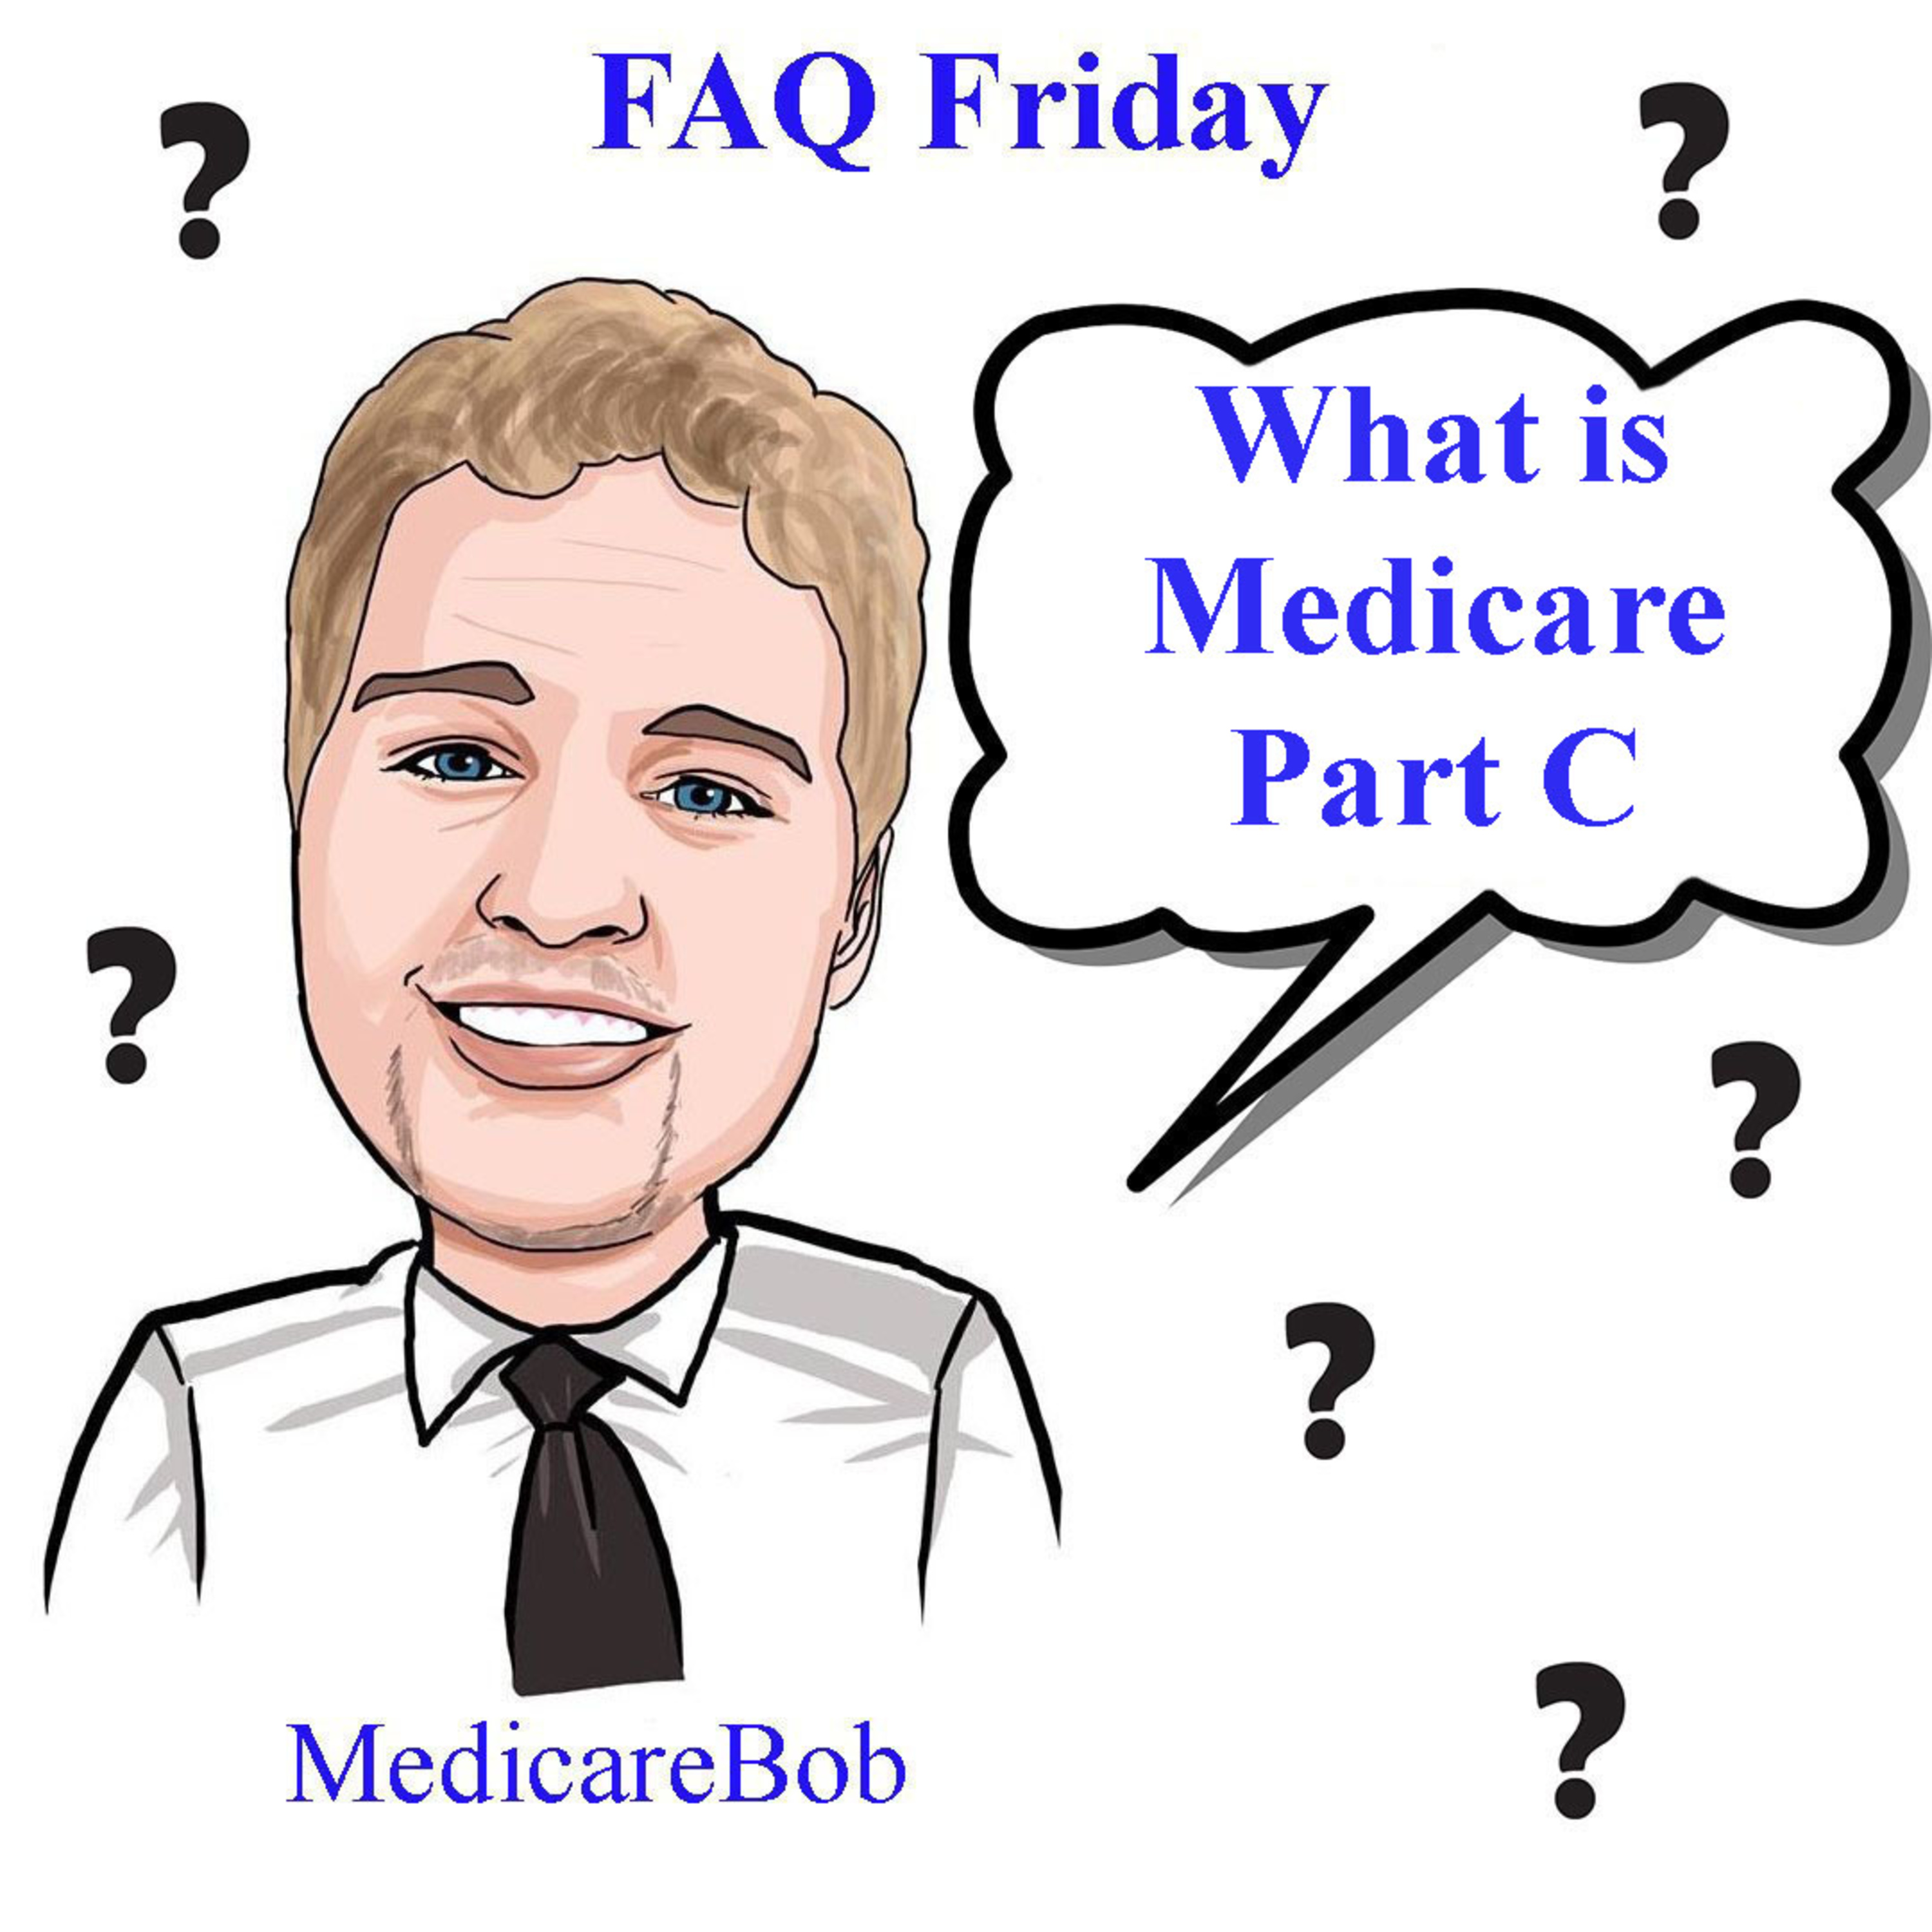 FAQ Friday: What is Medicare Part C